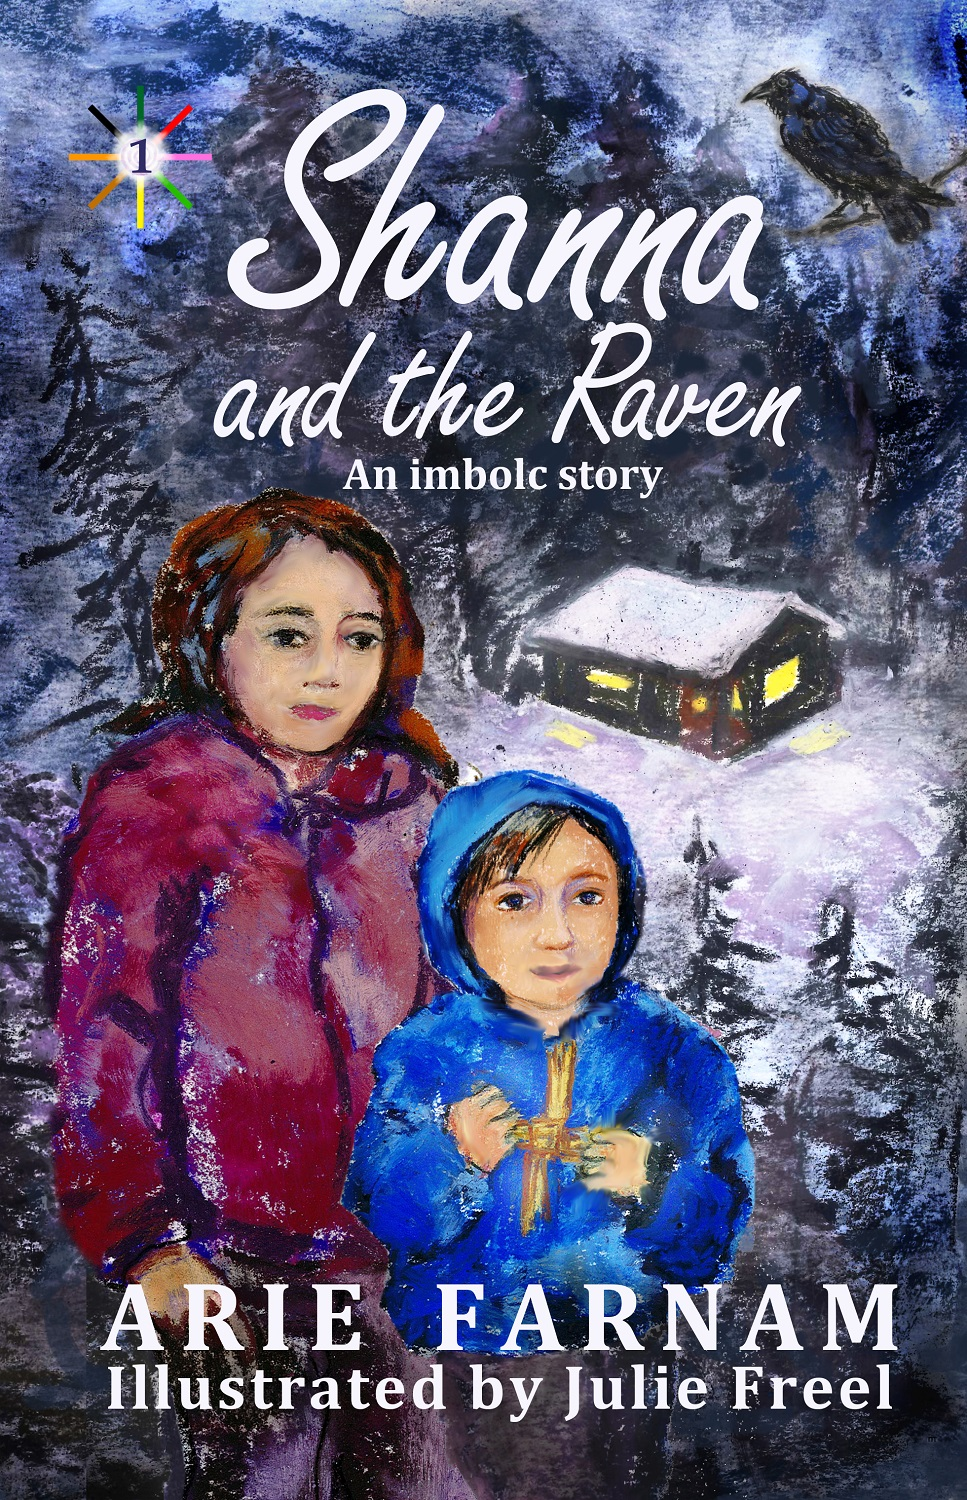 Finally! A children's story that actually prevents harm to children! Shanna and the Raven teaches children how to use their intuition to avoid dangerous situations.